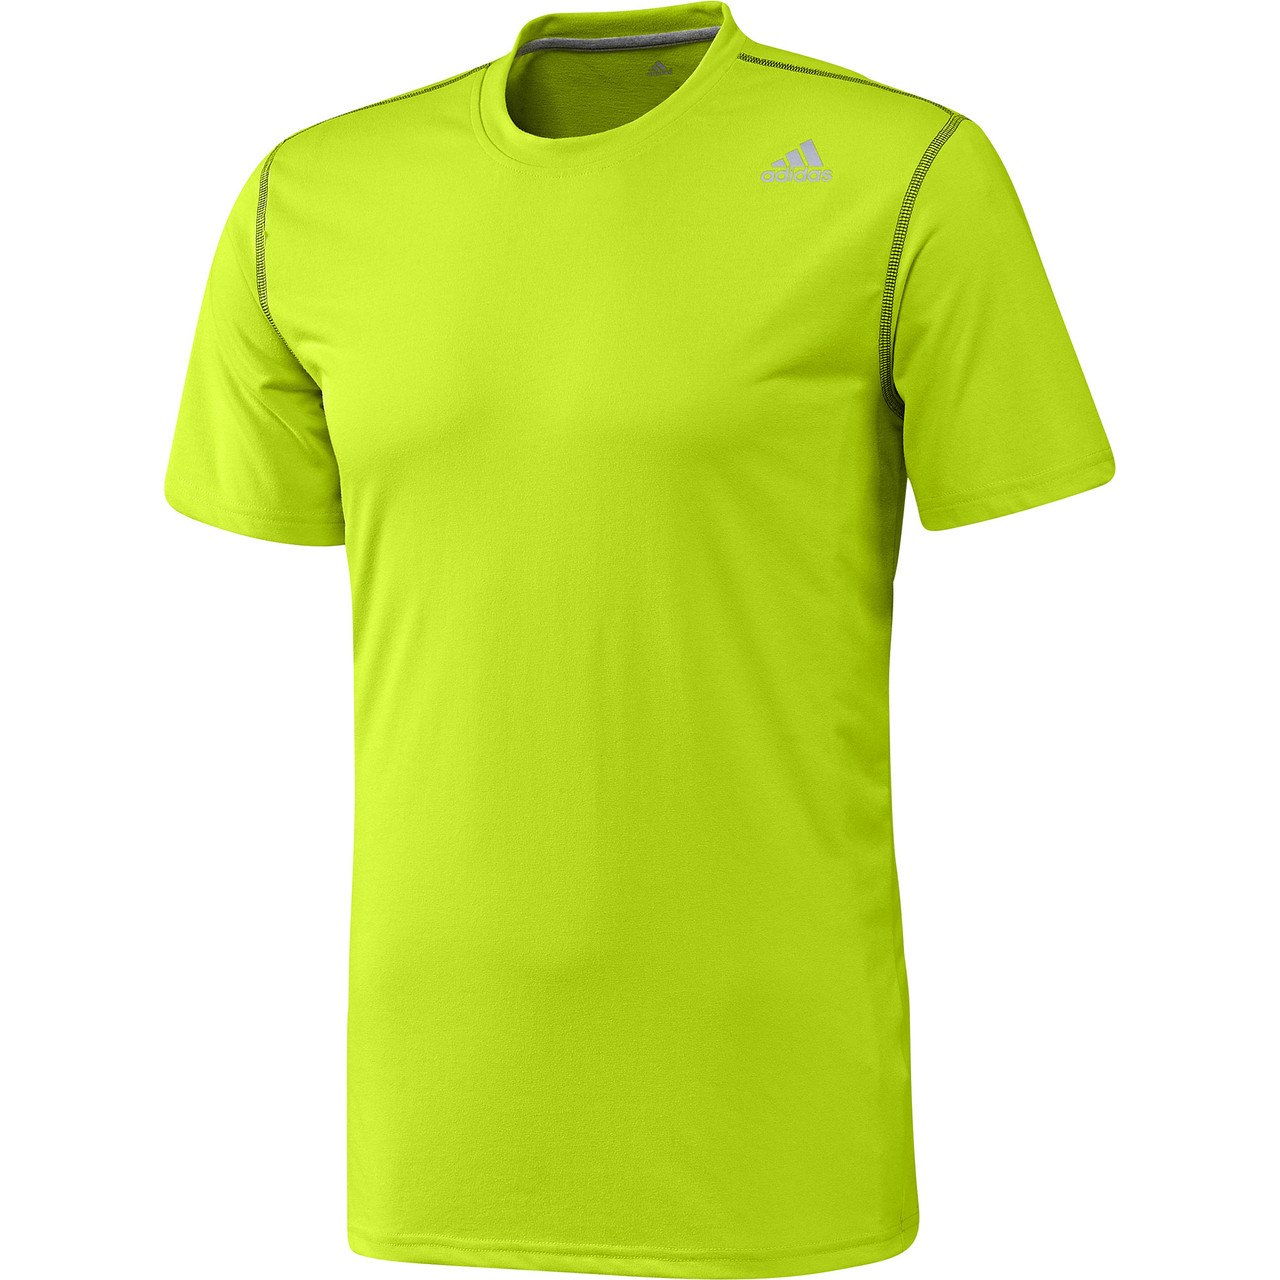 Футболка спортивная, мужская Adidas Mens Prime Climalite+ Short Sleeve T-Shirt Top F51125 адидас